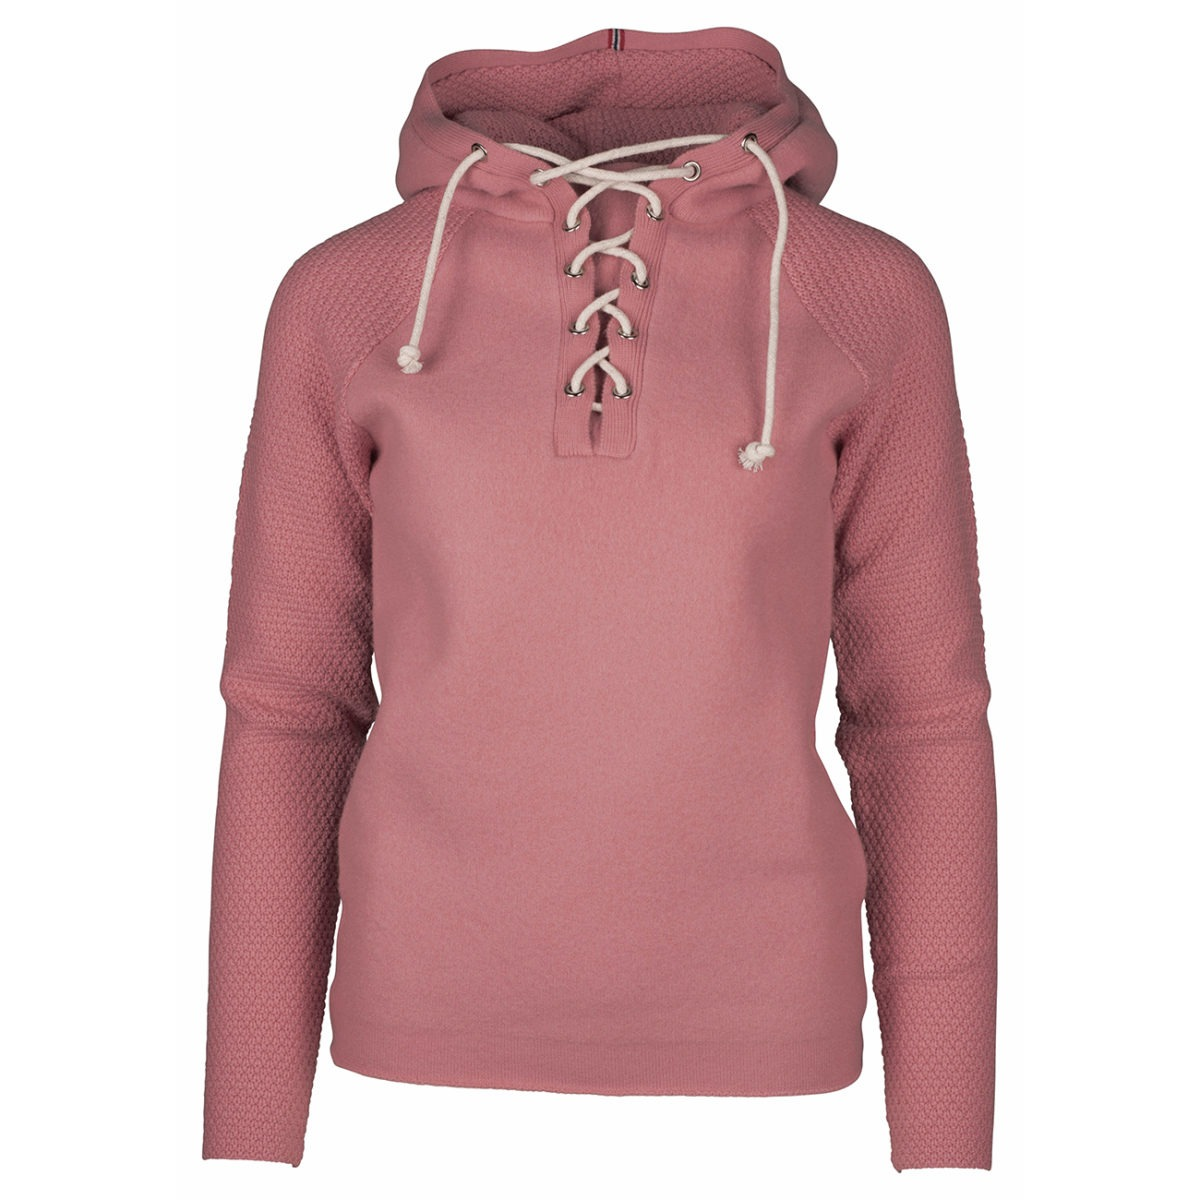 BOILED HOODIE LACED (W) - Pink, XS